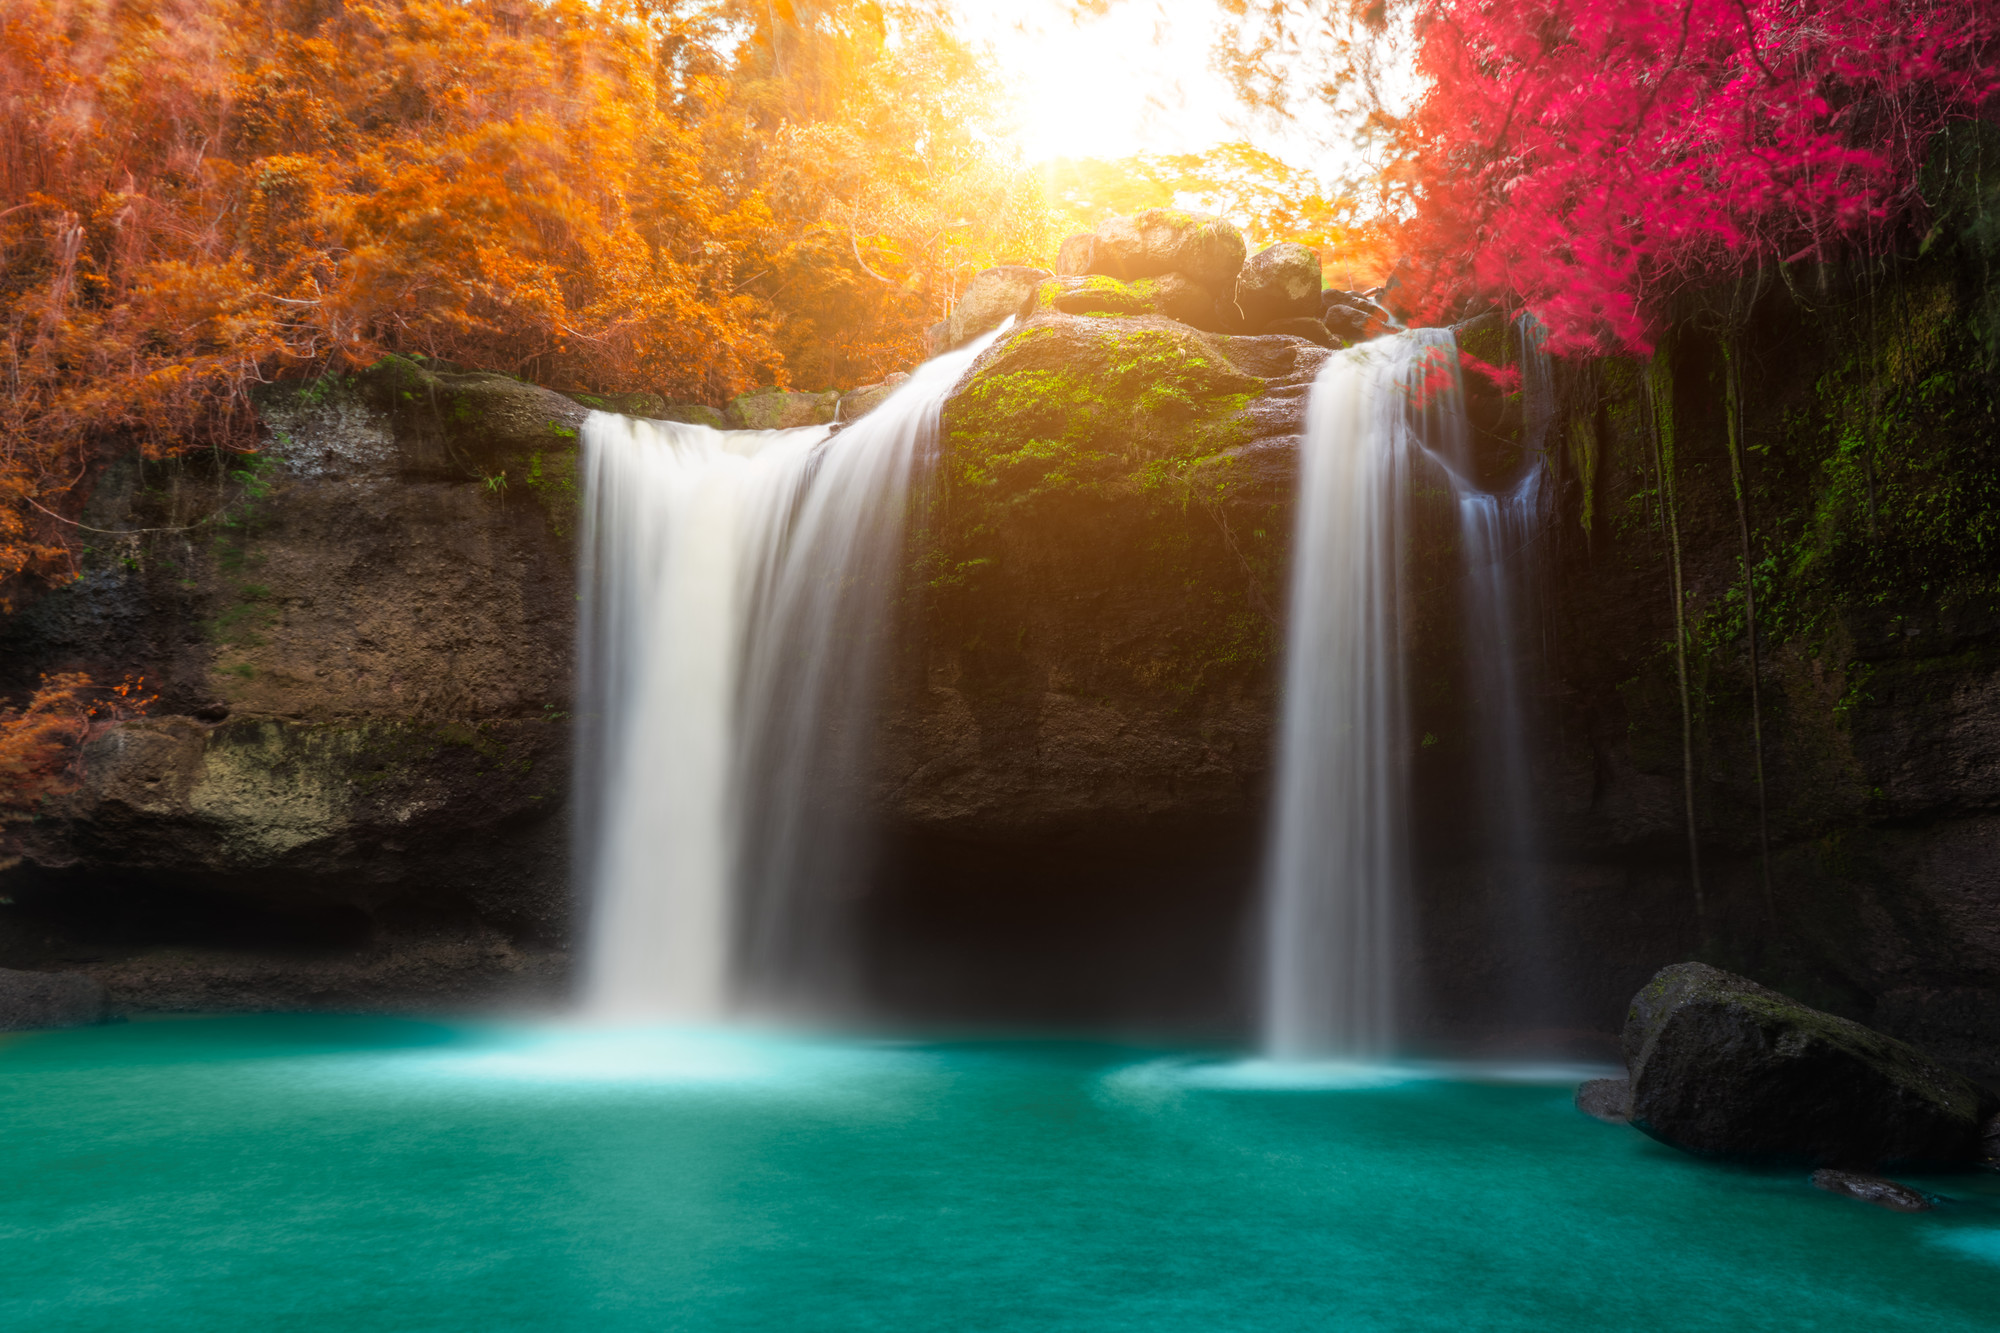 Amazing beautiful waterfalls in autumn forest at Haew Suwat Waterfall in Khao Yai National Park, Thailand